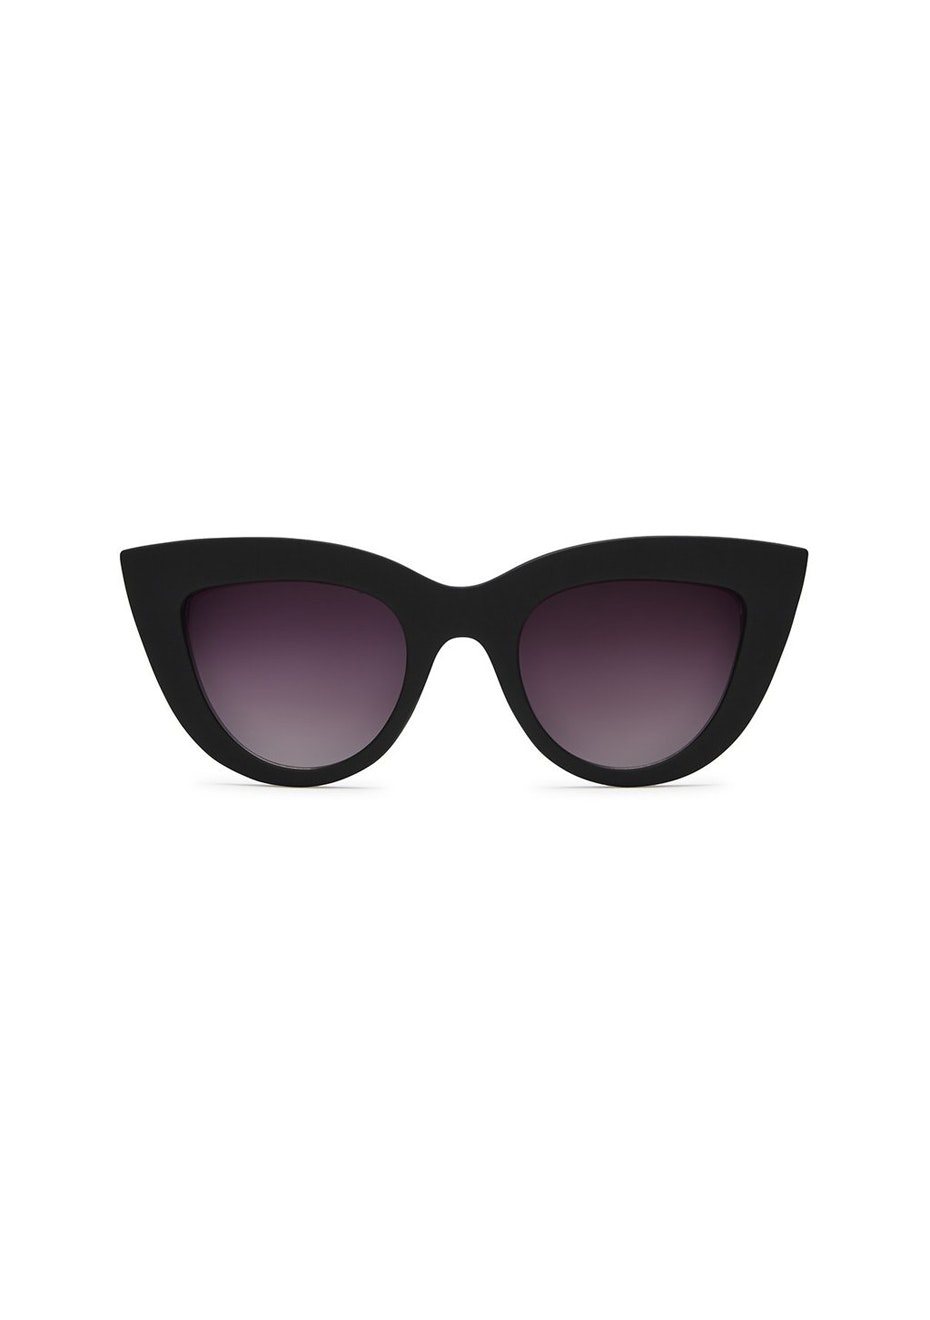 Quay - Kitti - Black/Smoke Lens